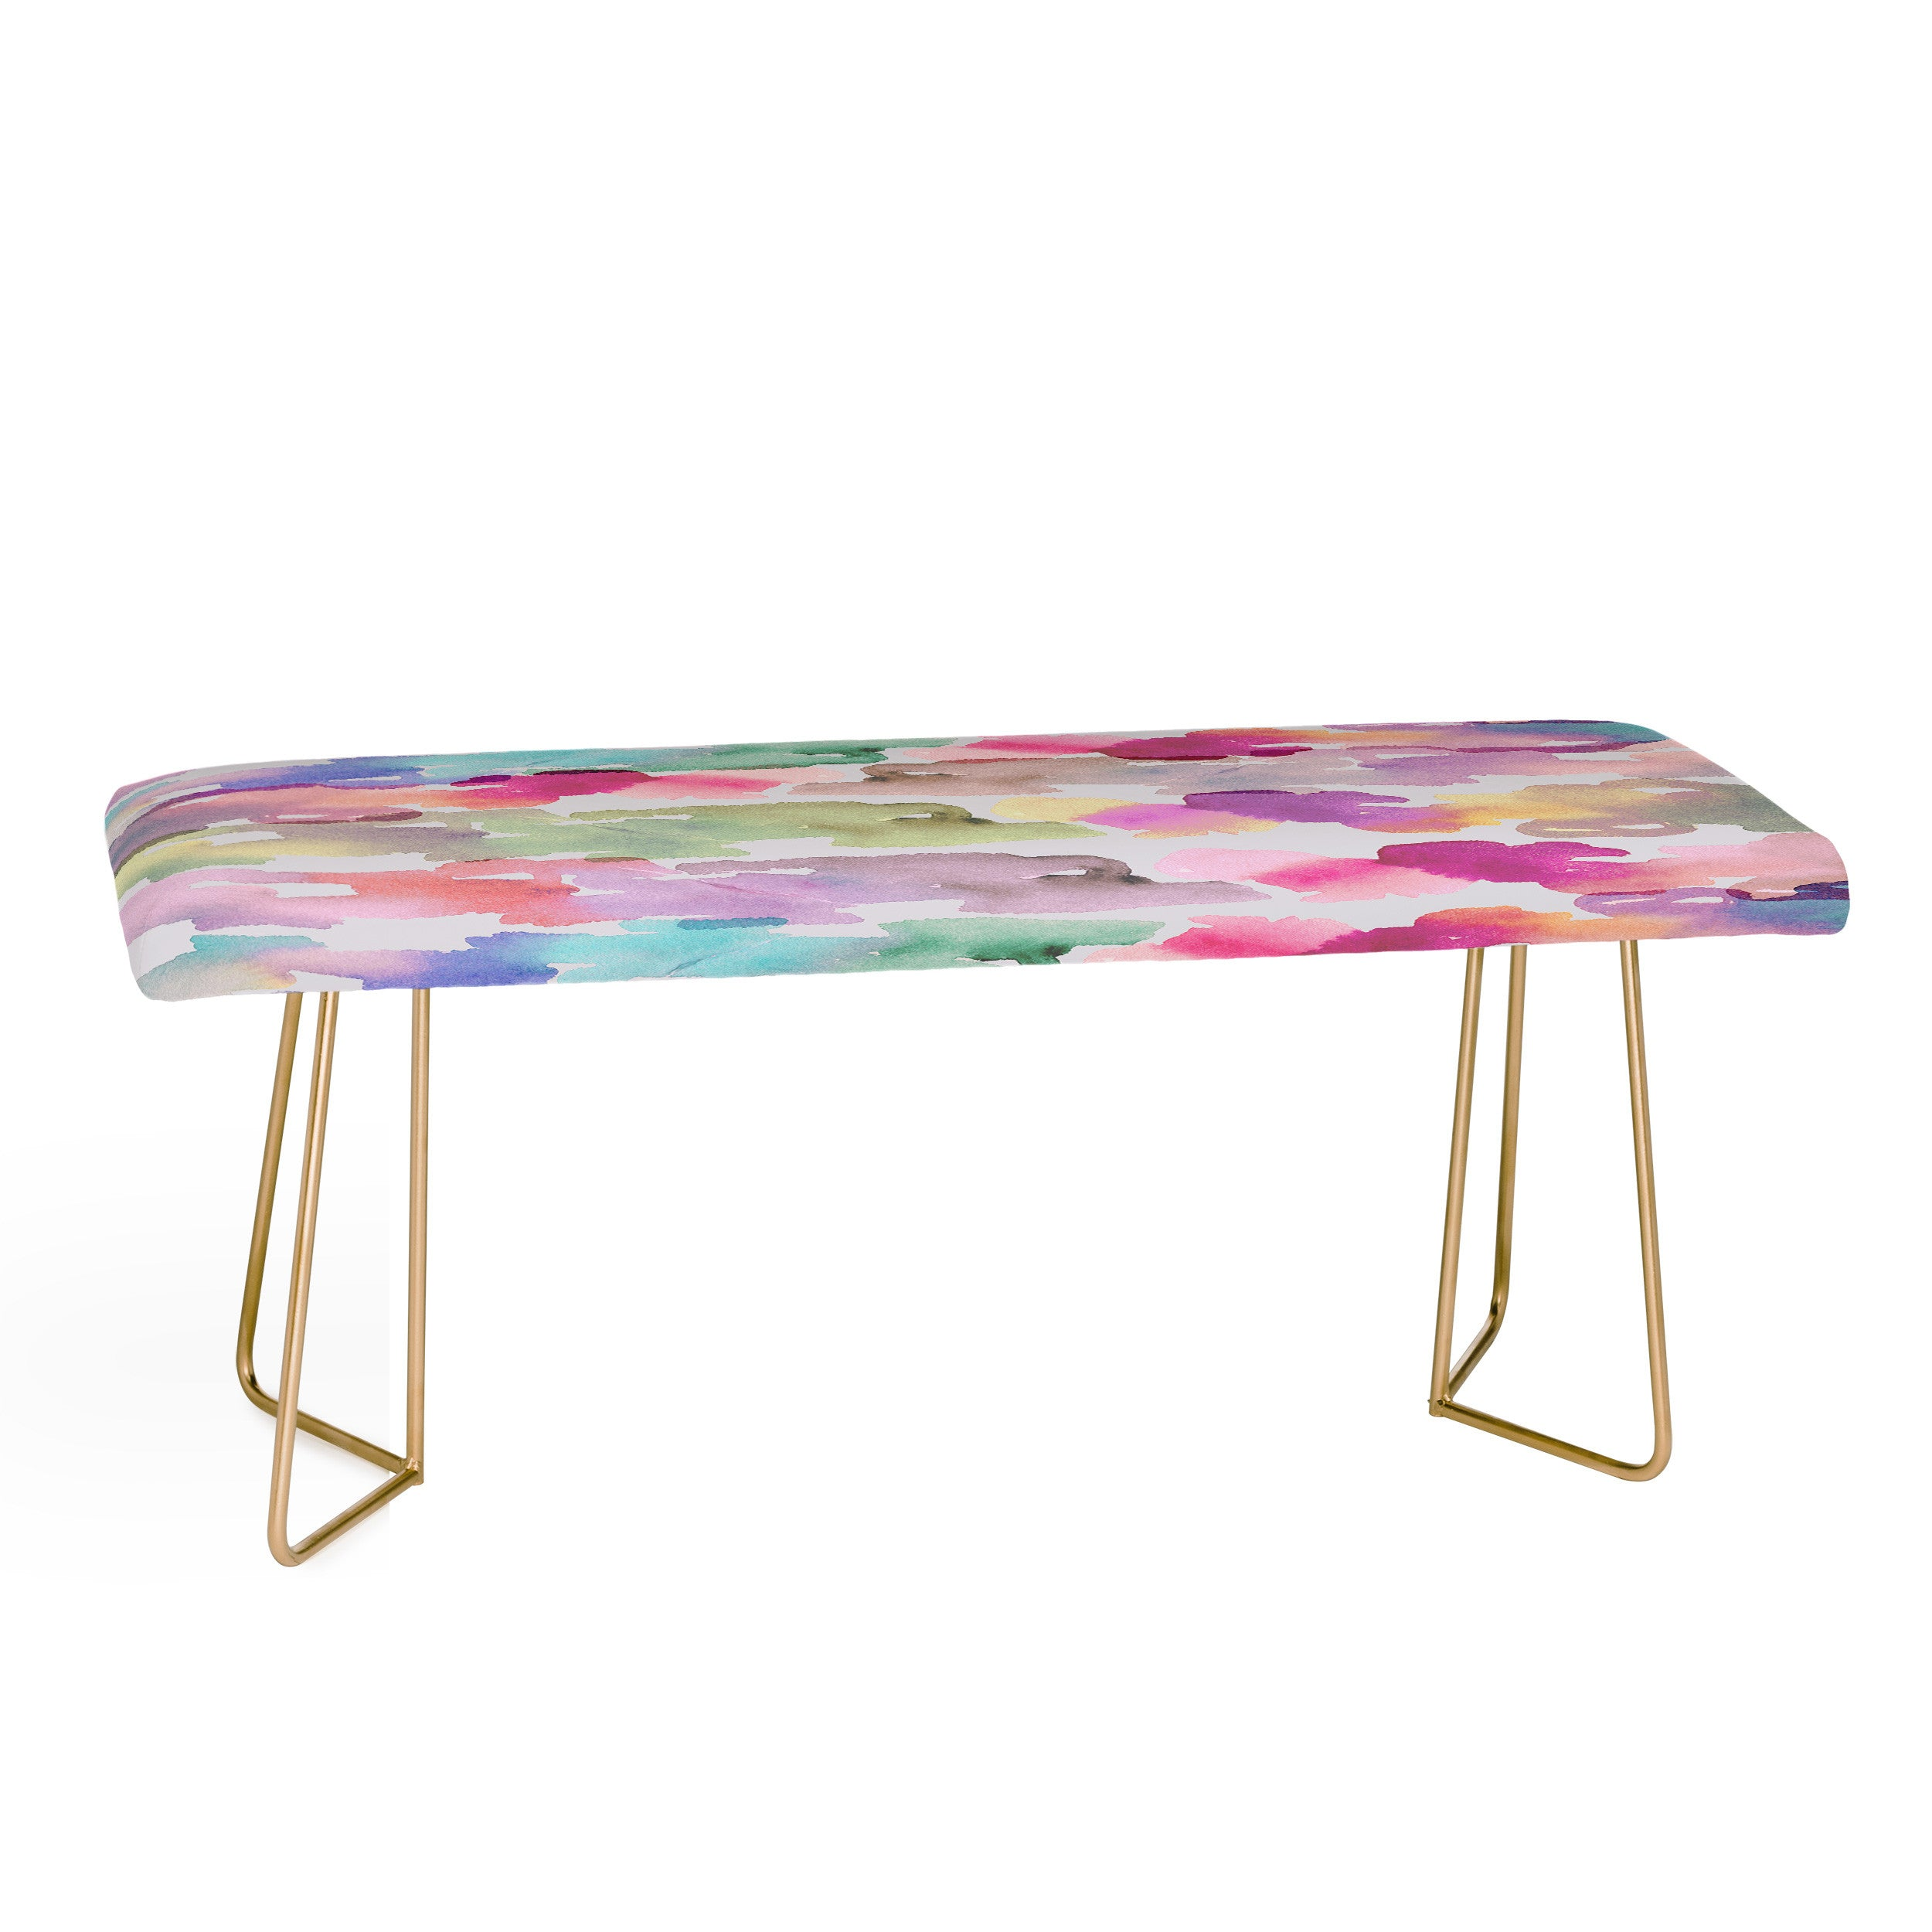 Stephanie Corfee Spun Sugar Bench